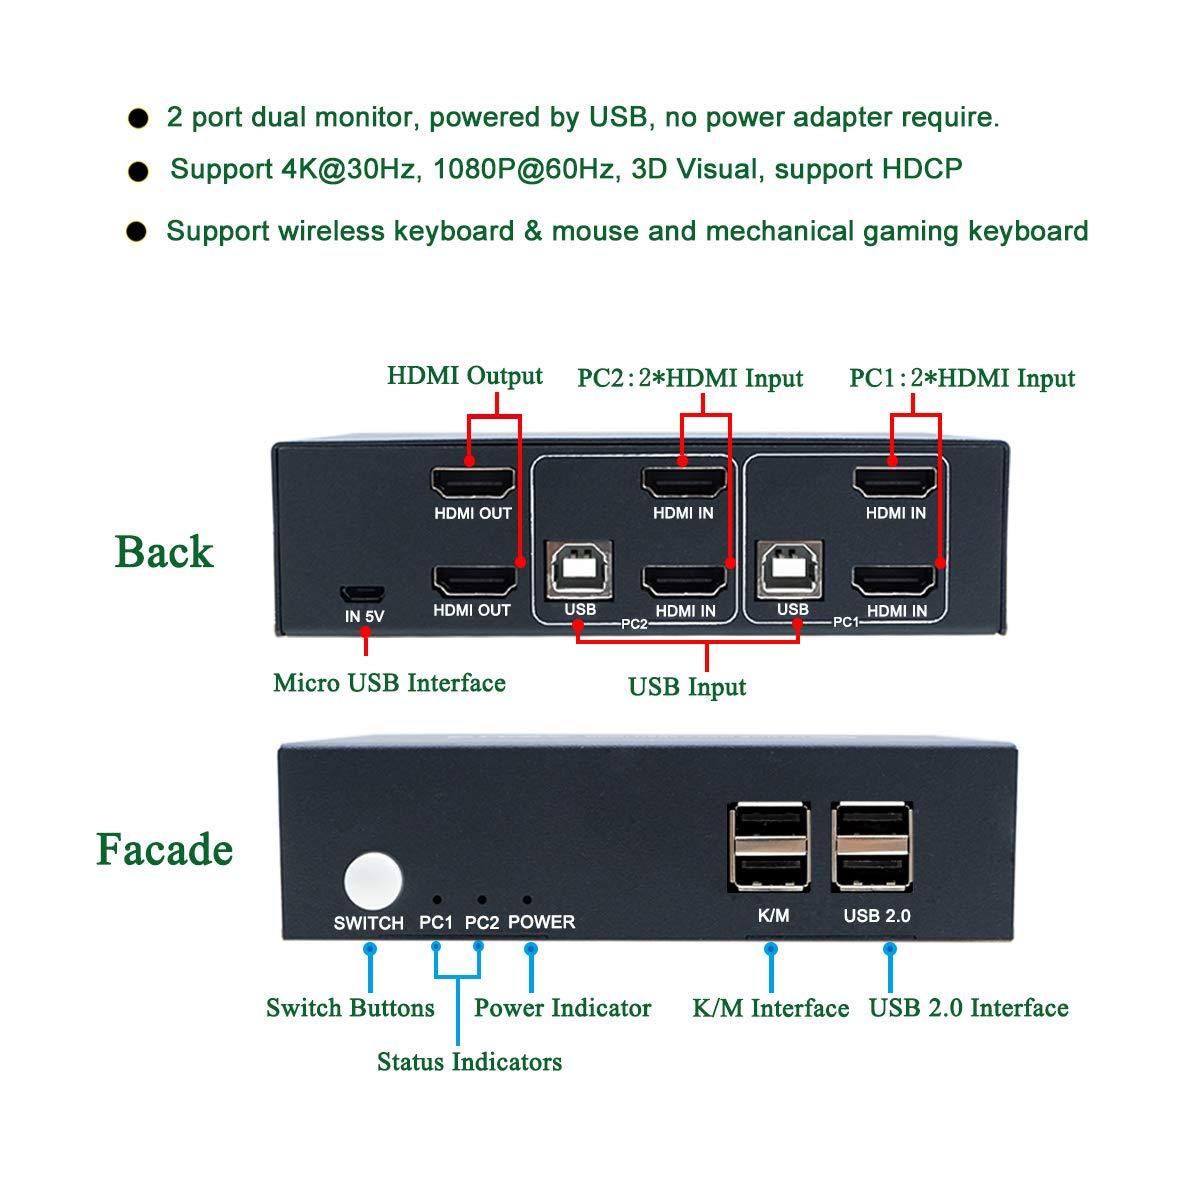 Powered by USB UHD 4K@30Hz AAO 2 Port HDMI KVM Switch 2x1 Support Normal Wireless Keyboard and Mouse Compatible with Windows Mac Linux with 2 HDMI and USB Cables Sliver